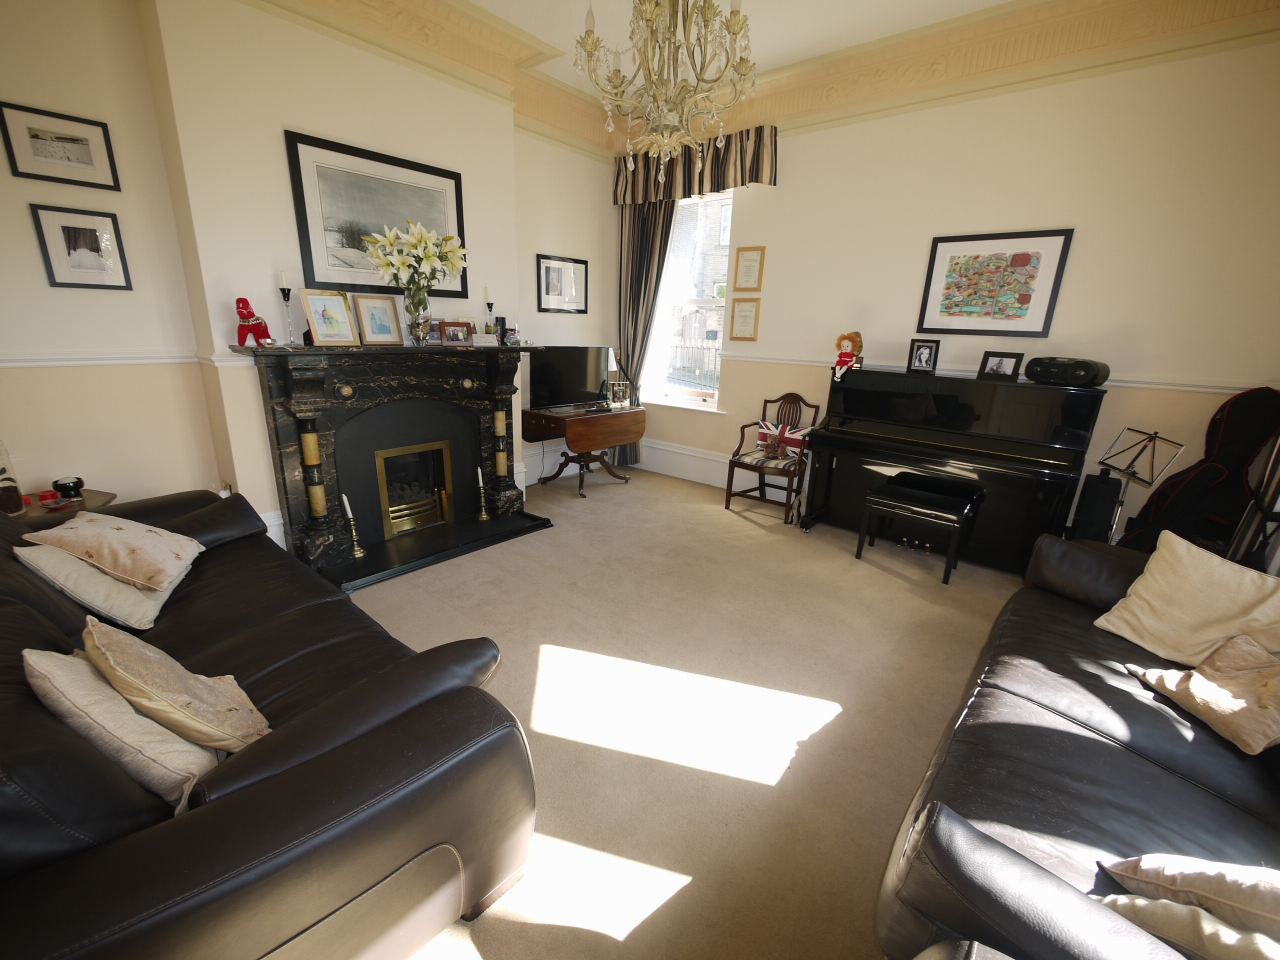 5 bedroom semi-detached house For Sale in Halilfax - Photograph 2.